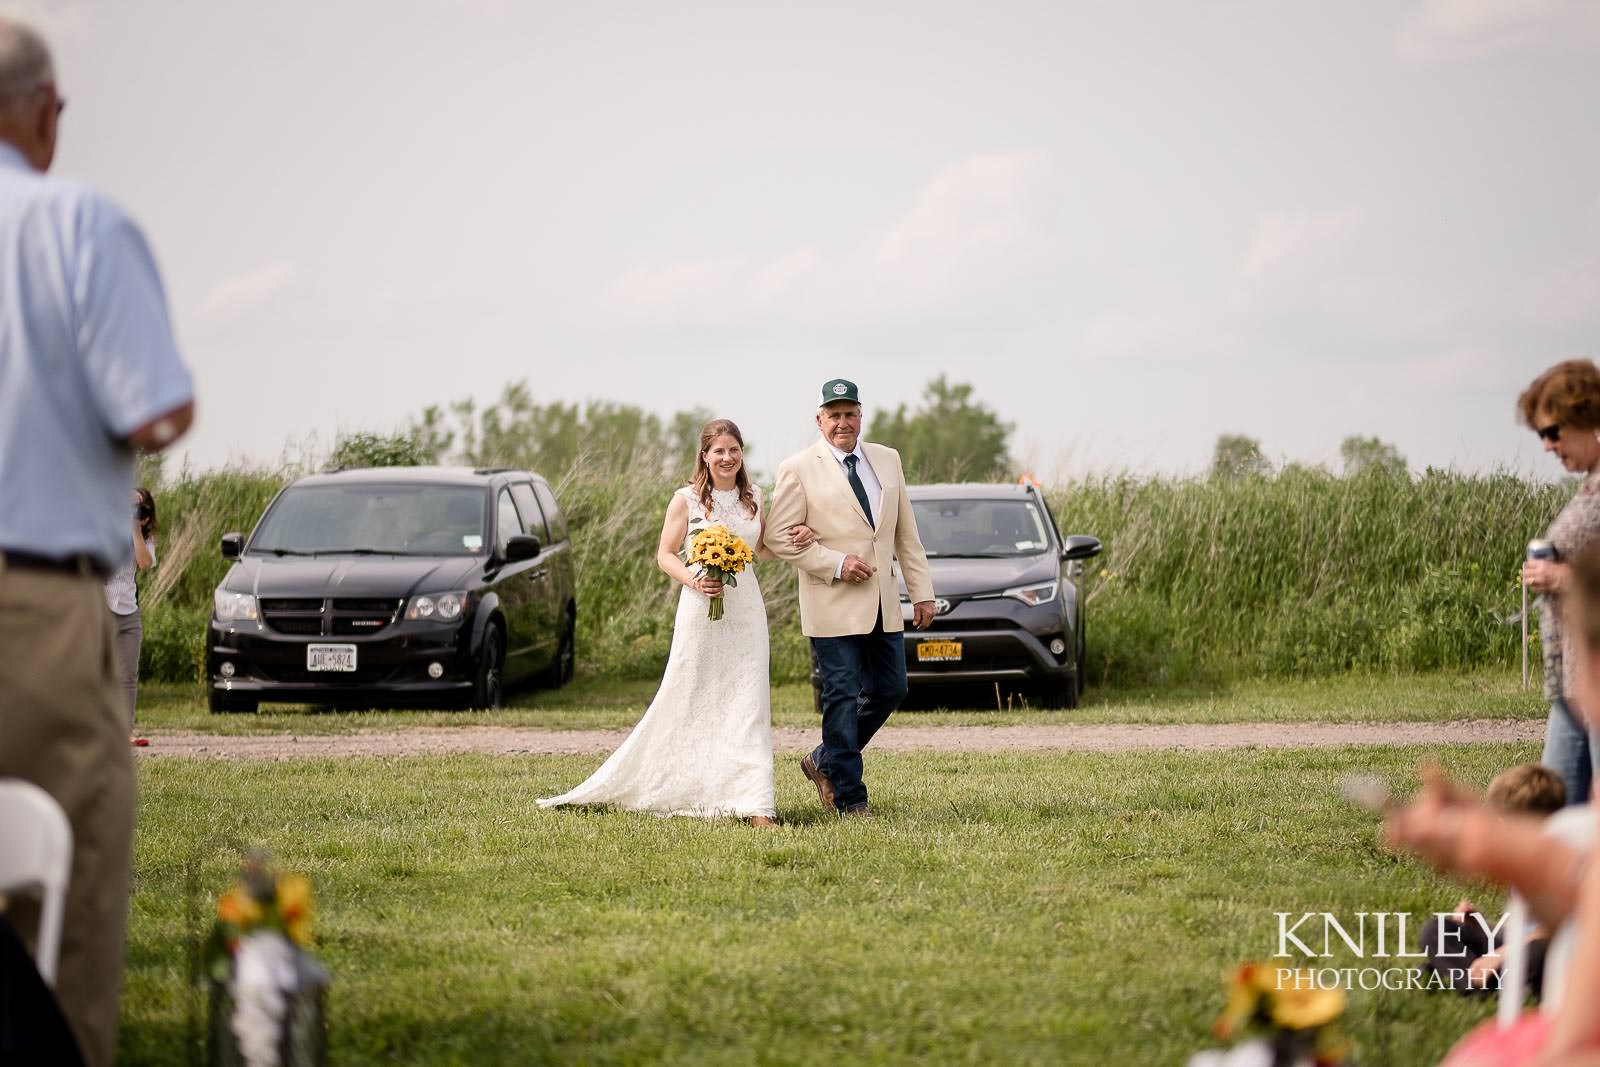 28-Western-New-York-farm-wedding-Kniley-Photography.jpg